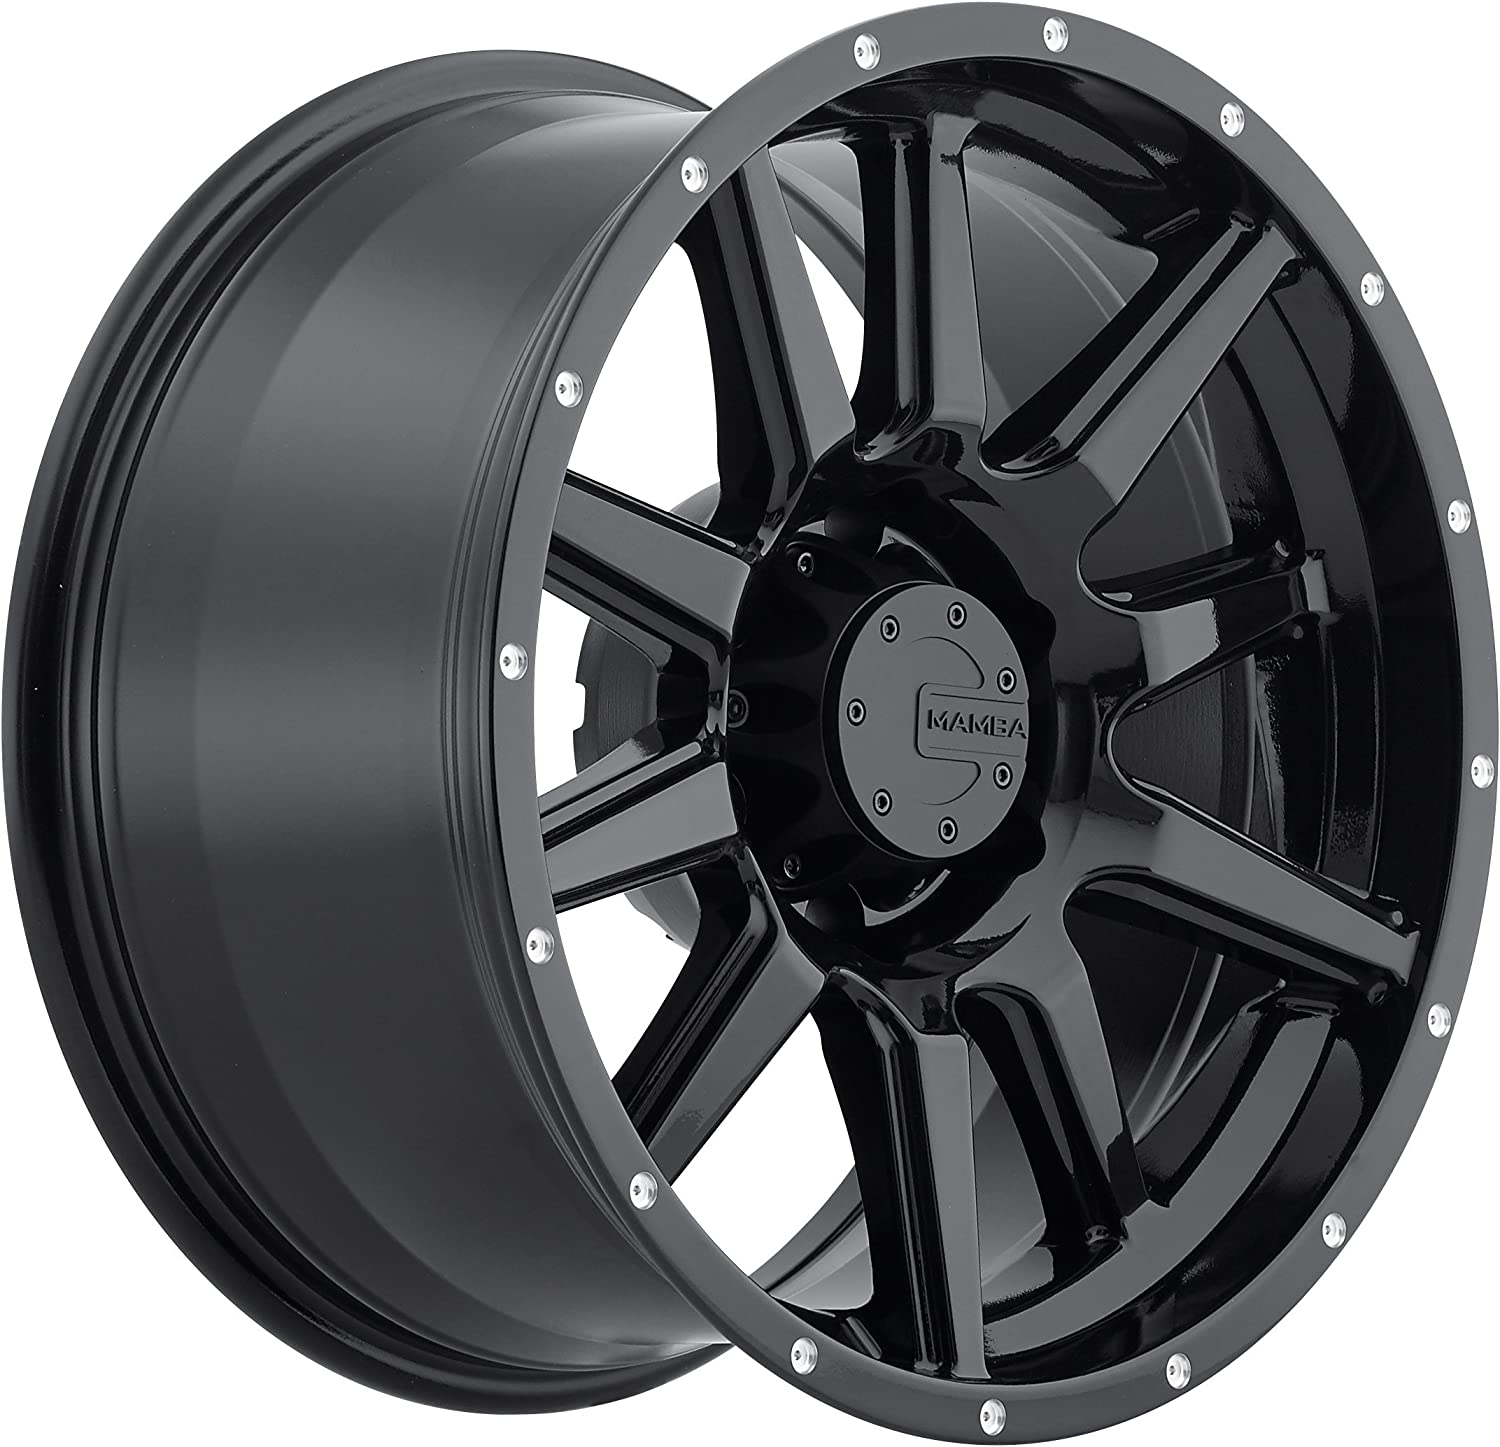 17 x 9. inches //6 x 139 mm, -12 mm Offset Mamba M15 Gloss Black Wheel with Painted Finish